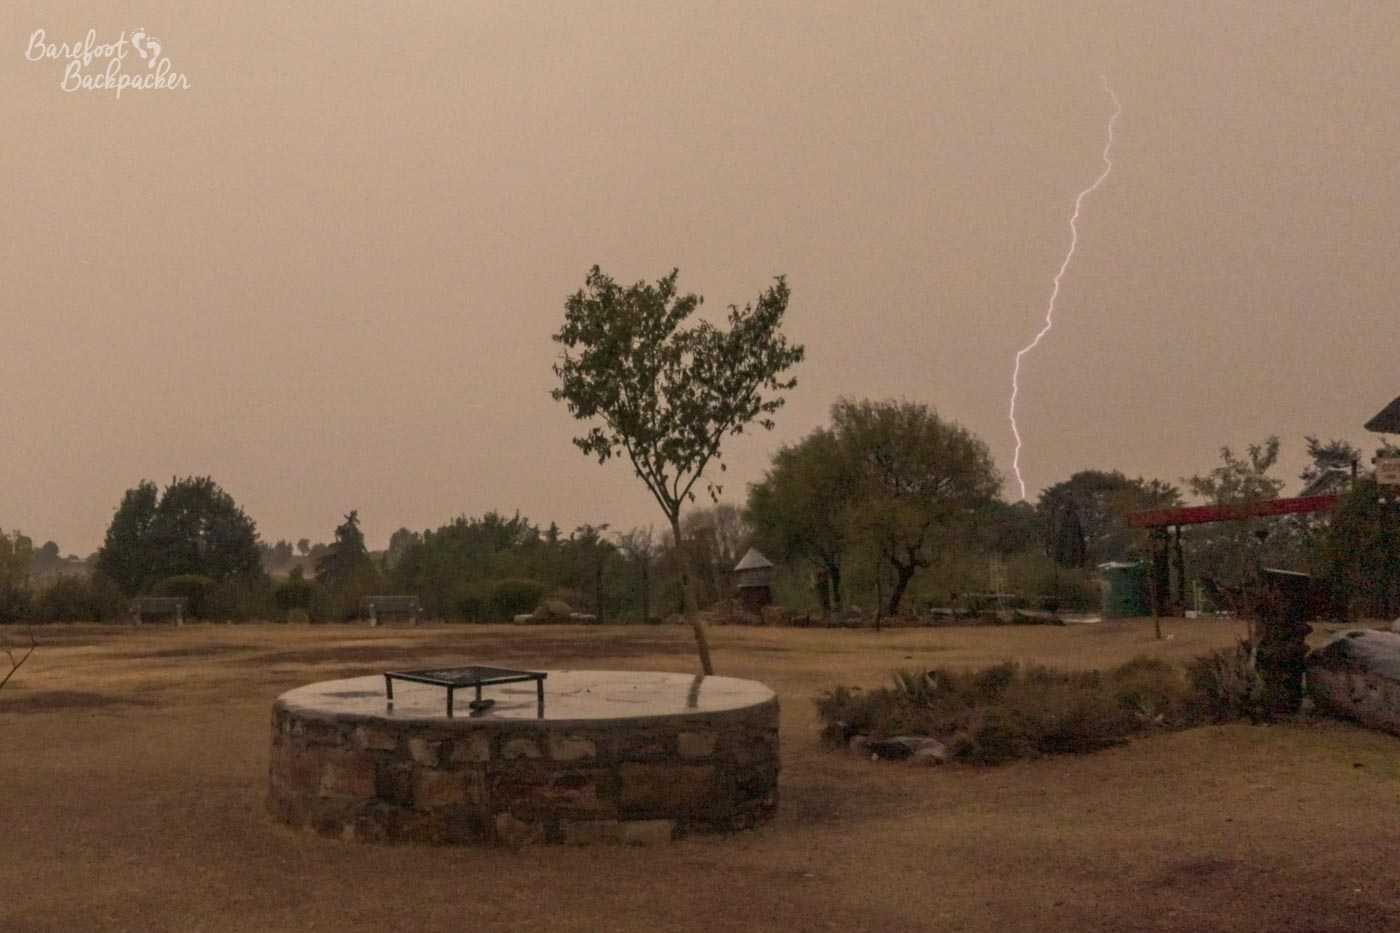 Lightning bolt during a heavy storm in Malealea, Lesotho